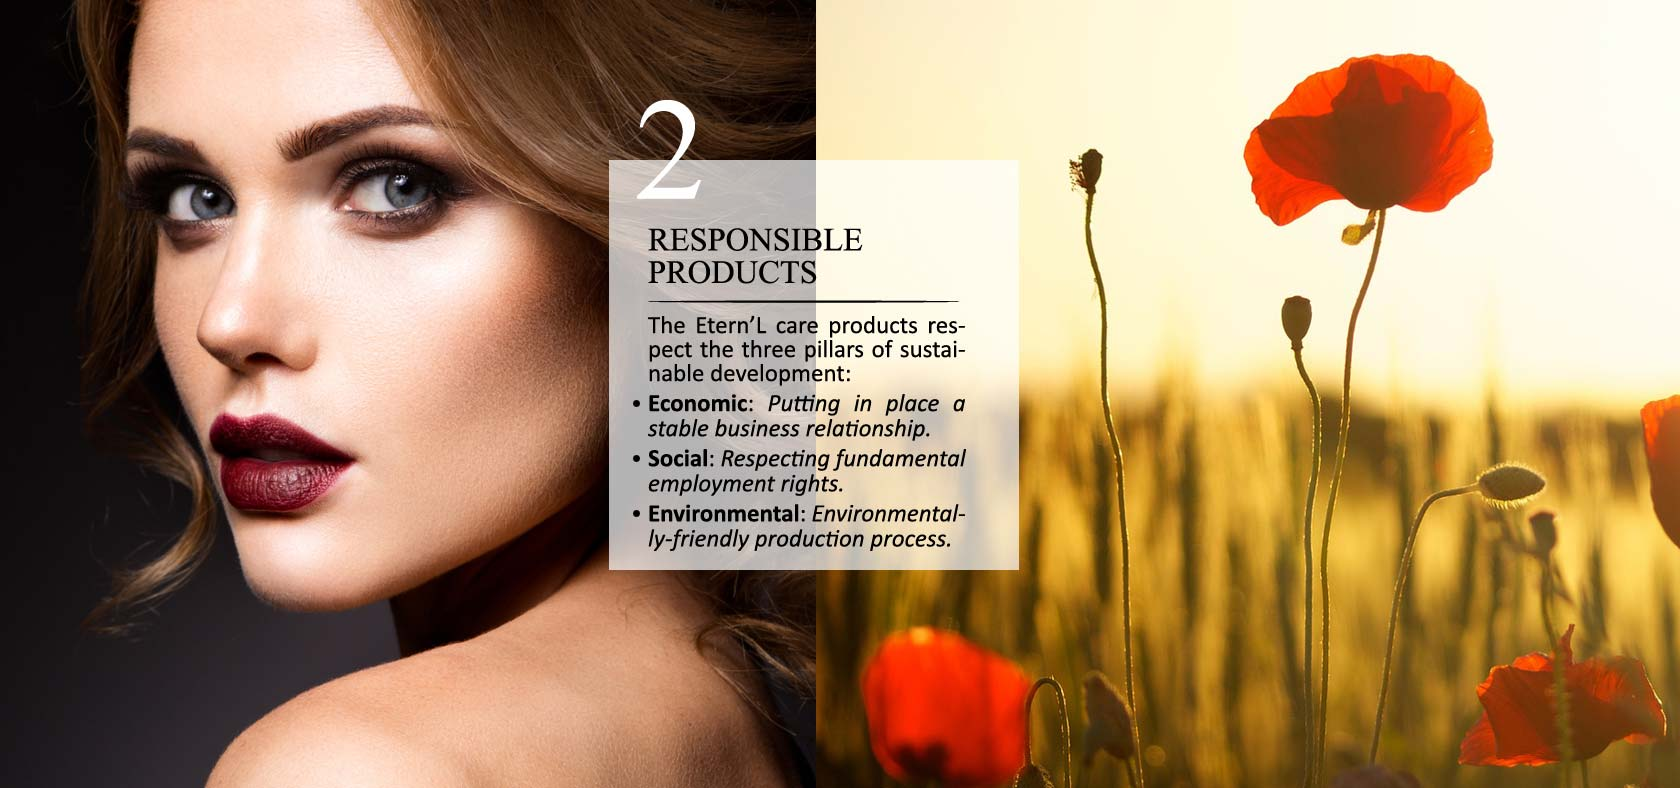 Éternel commitment #2: responsible products